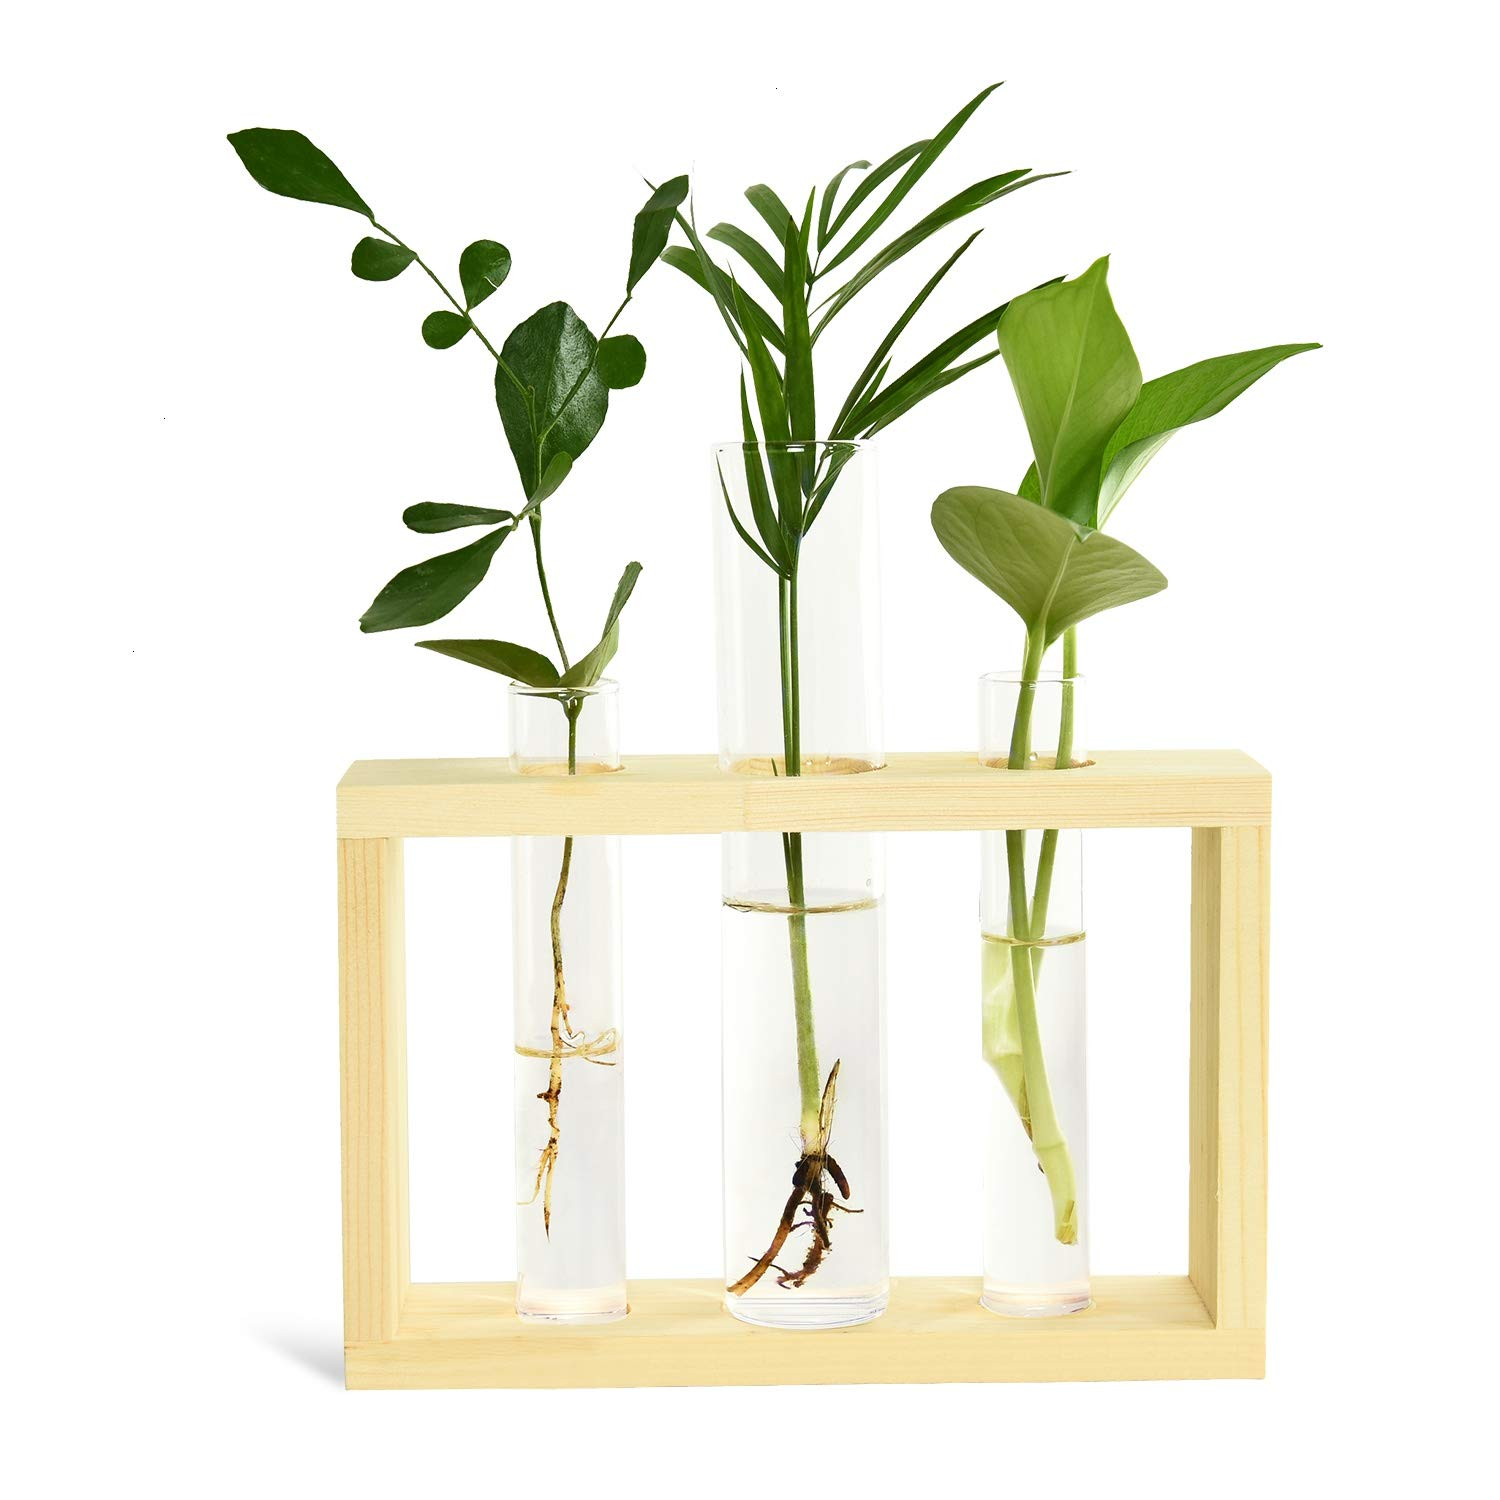 Vumdua Test Tube Planter Plant Propagation Station Glass Terrarium Test Tube with Wood Stand for Propagating Hydroponic Plants Home Office Decoration